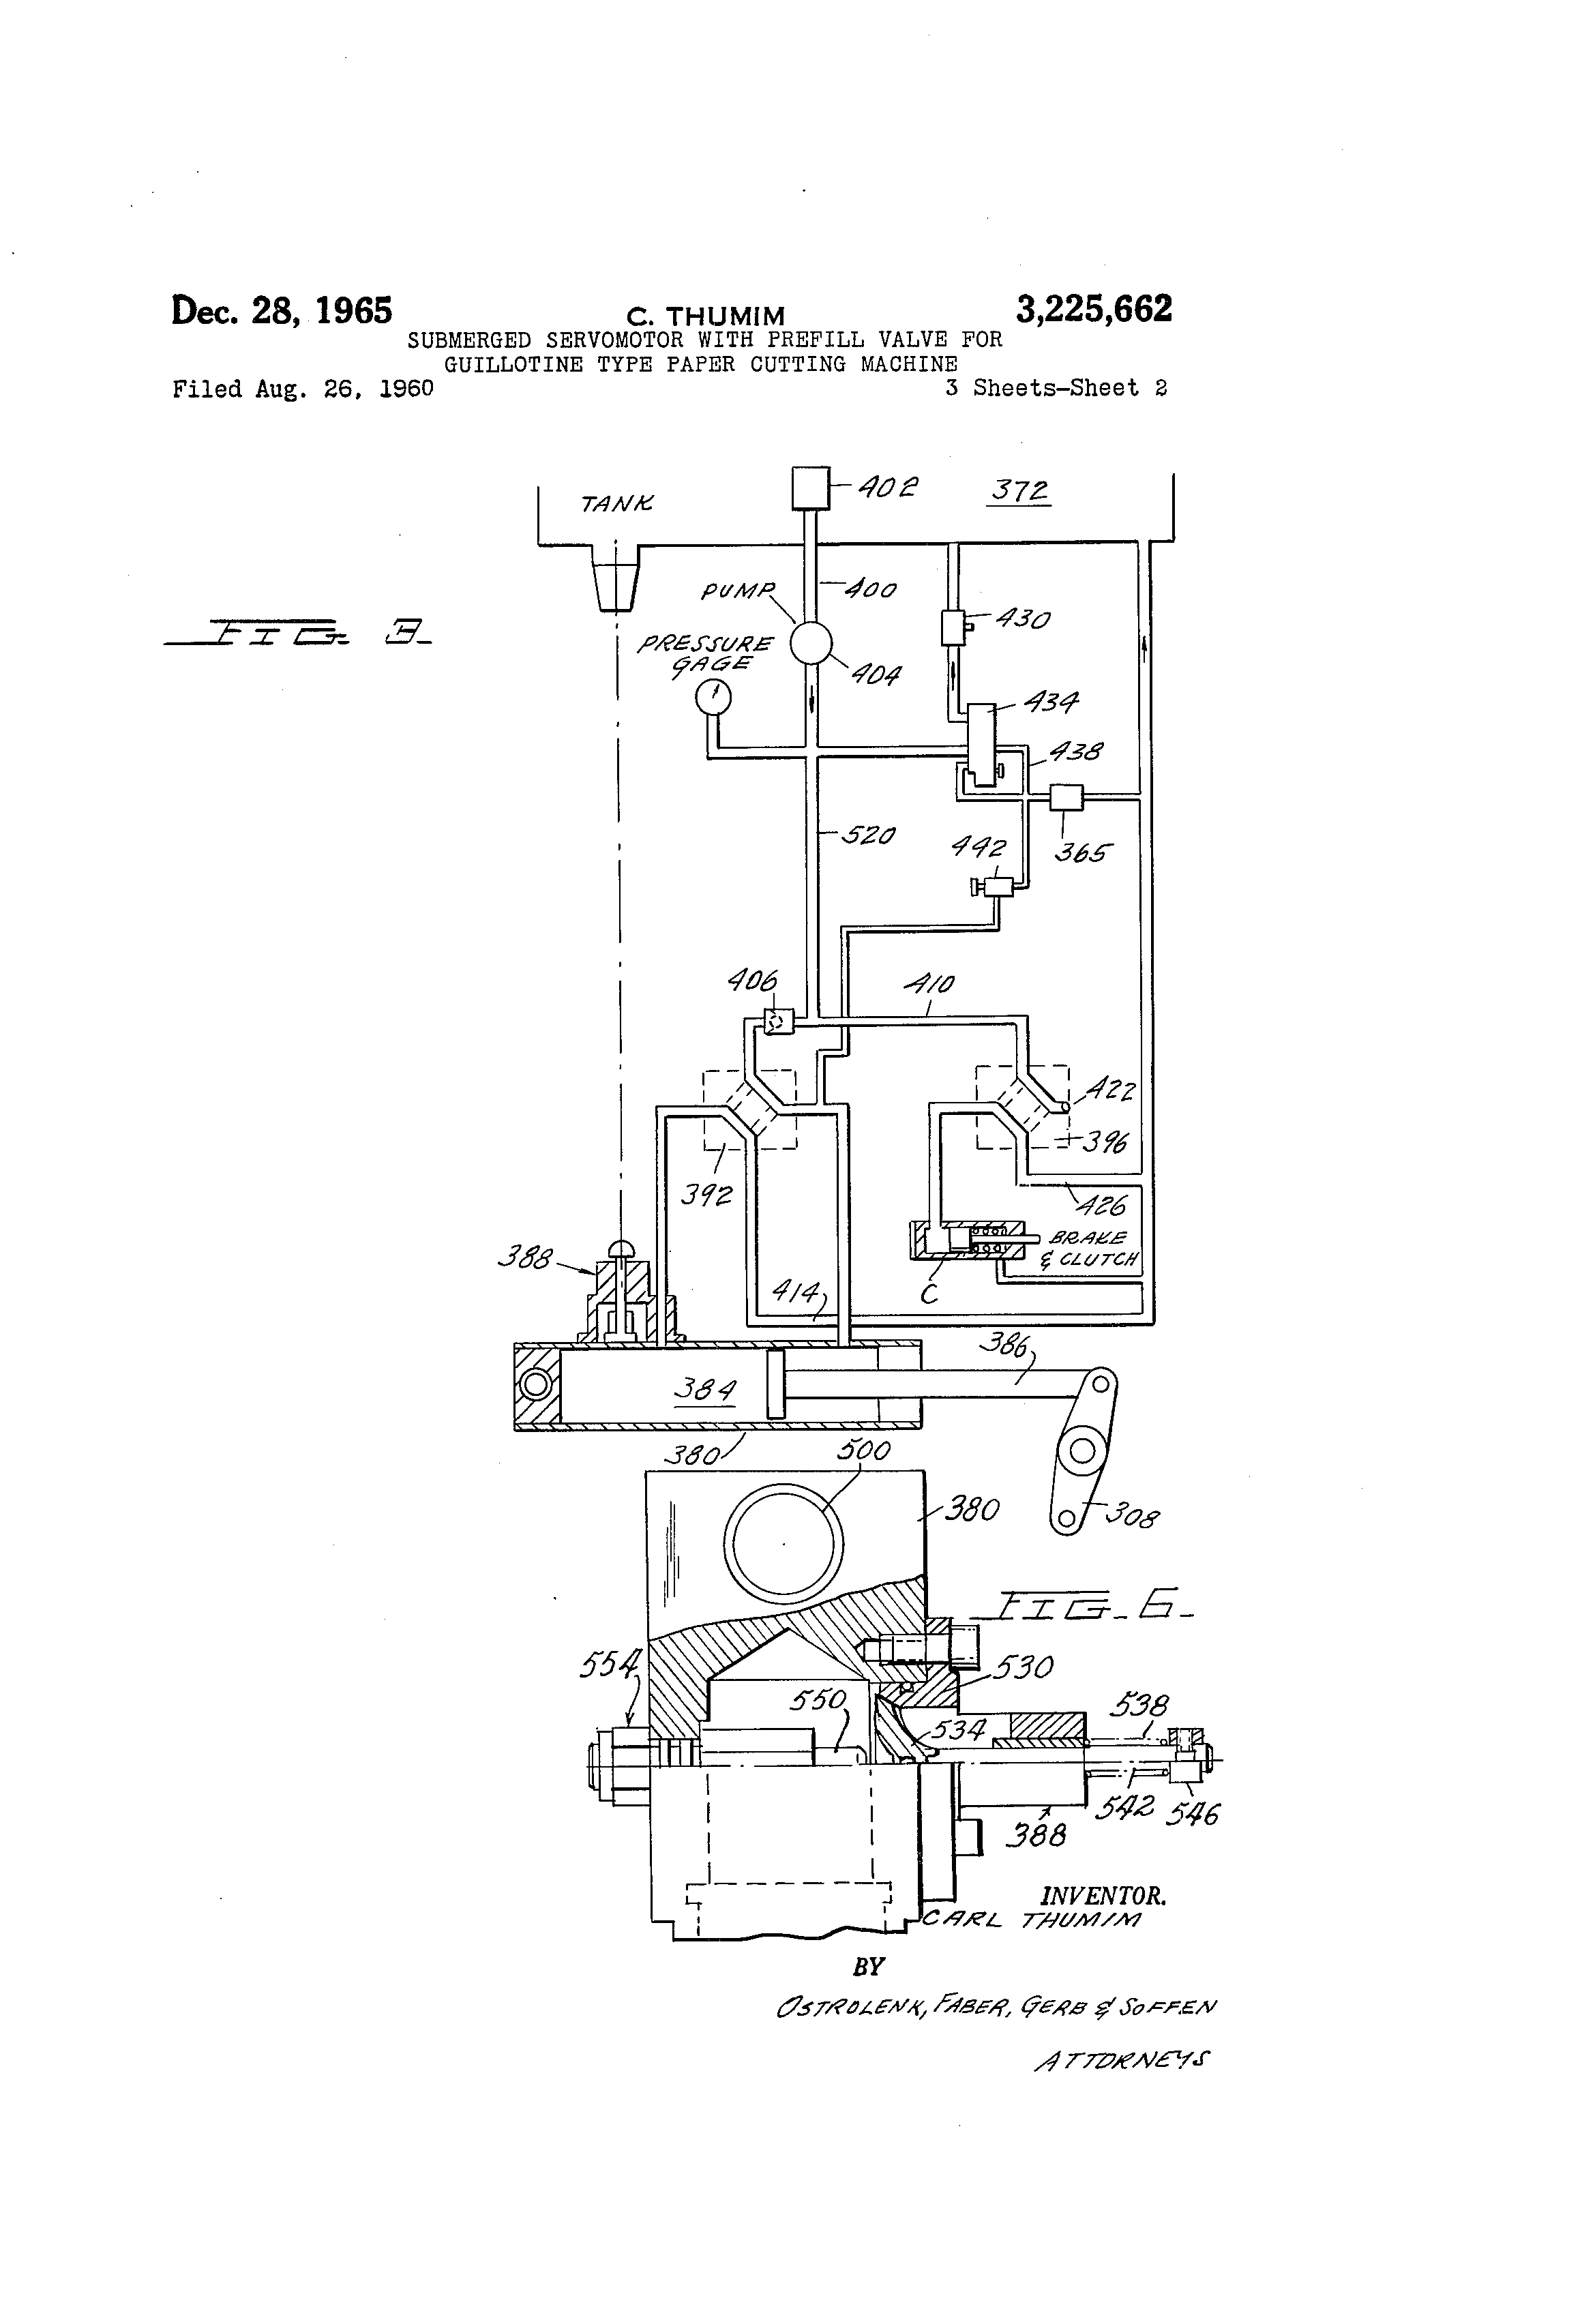 D39px-21 Hydraulic Pump Wiring Diagram